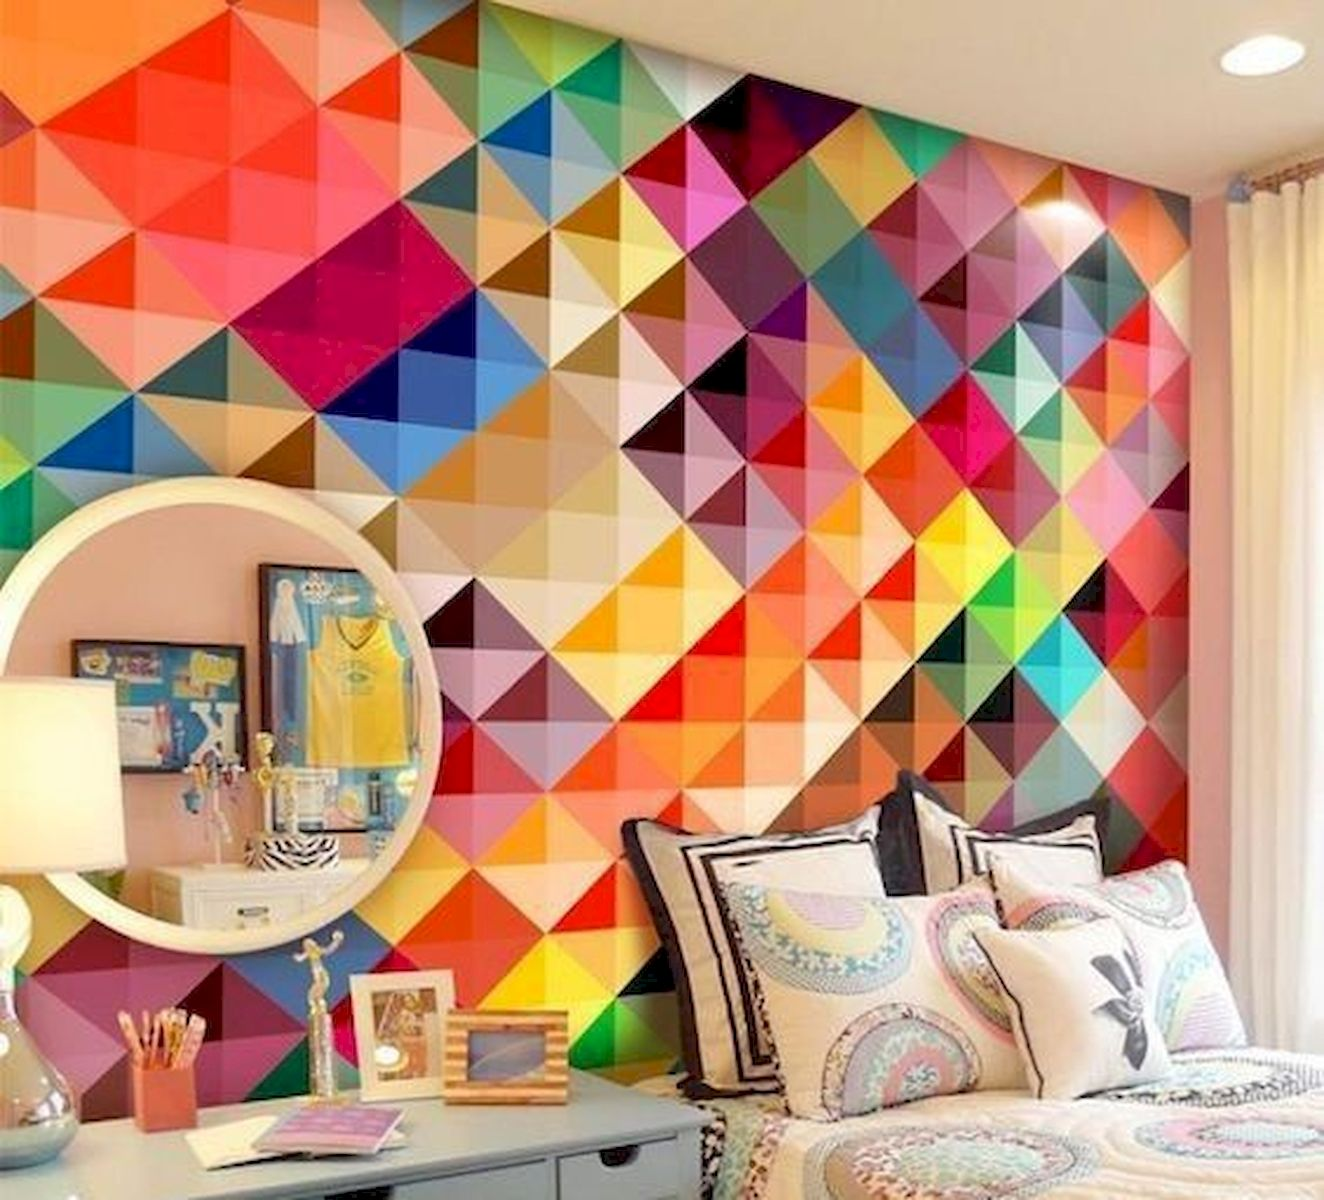 70 Awesome Colorful Bedroom Design Ideas and Remodel (27)